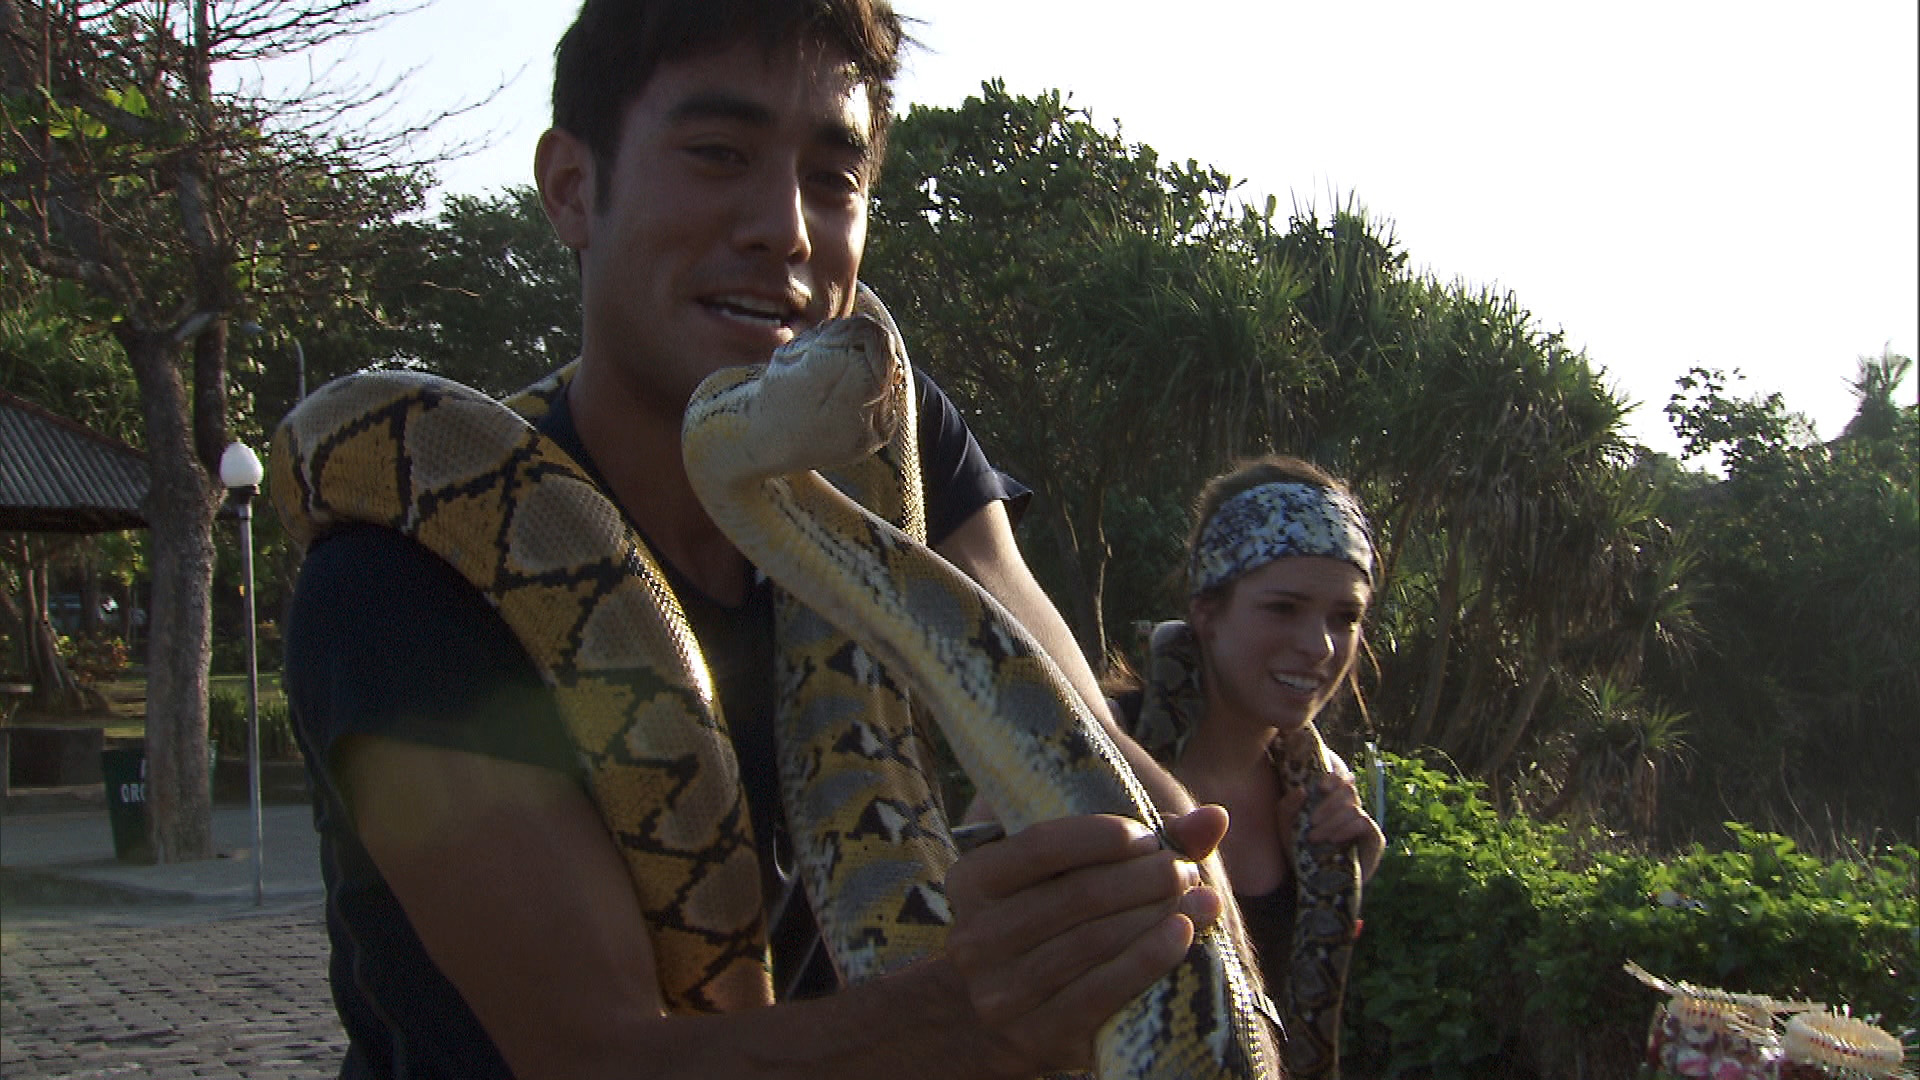 Zach and Rachel must conquer a mutual fear of snakes before getting the next clue.